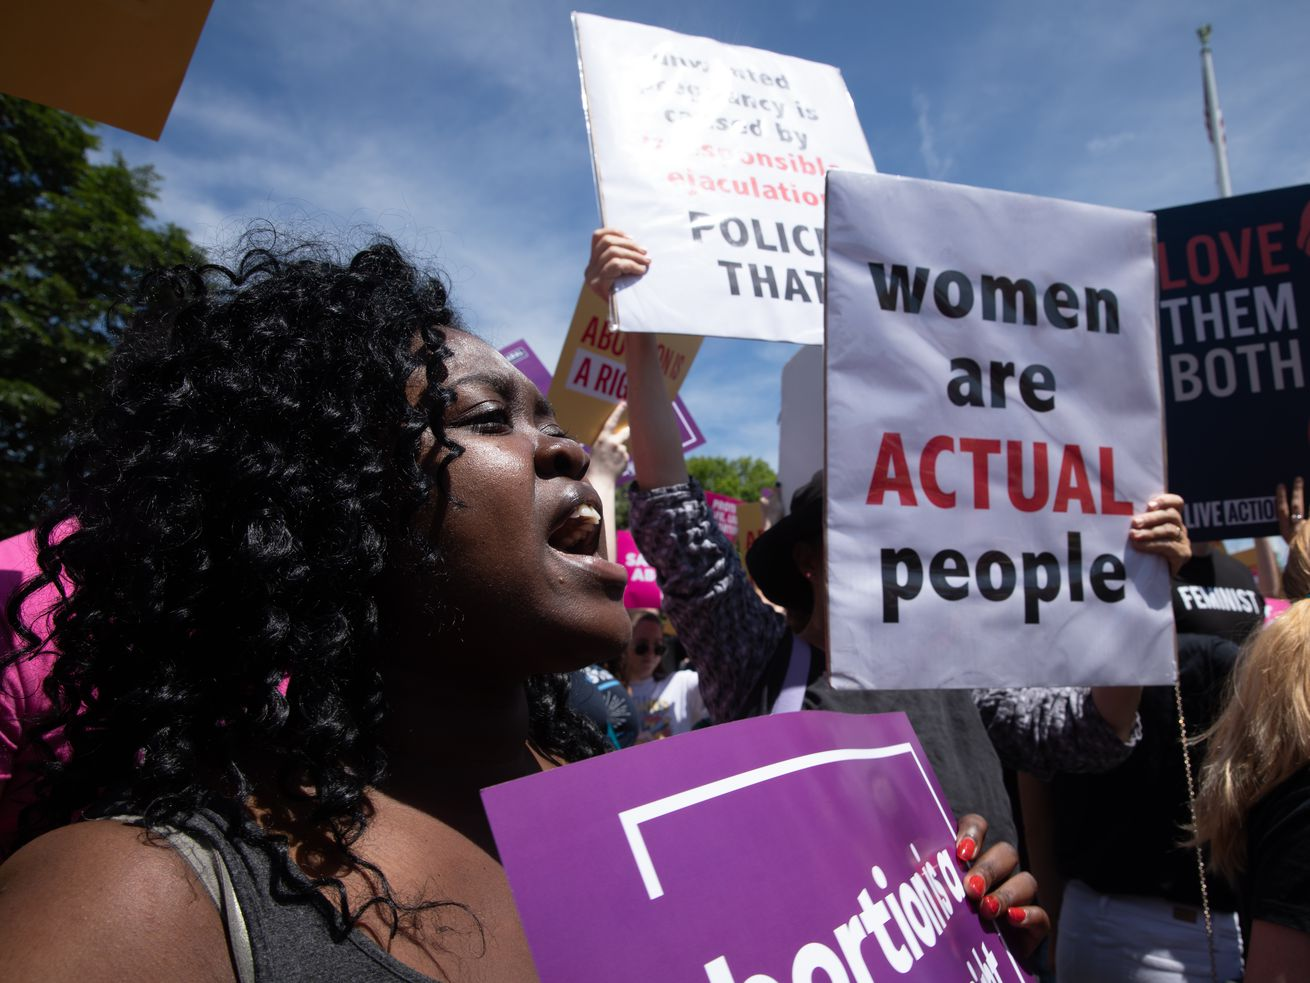 """Activists on both sides of the abortion issue demonstrate outside the U.S. Supreme Court on May 21, 2019. One holds a sign saying, """"Women are actual people."""""""